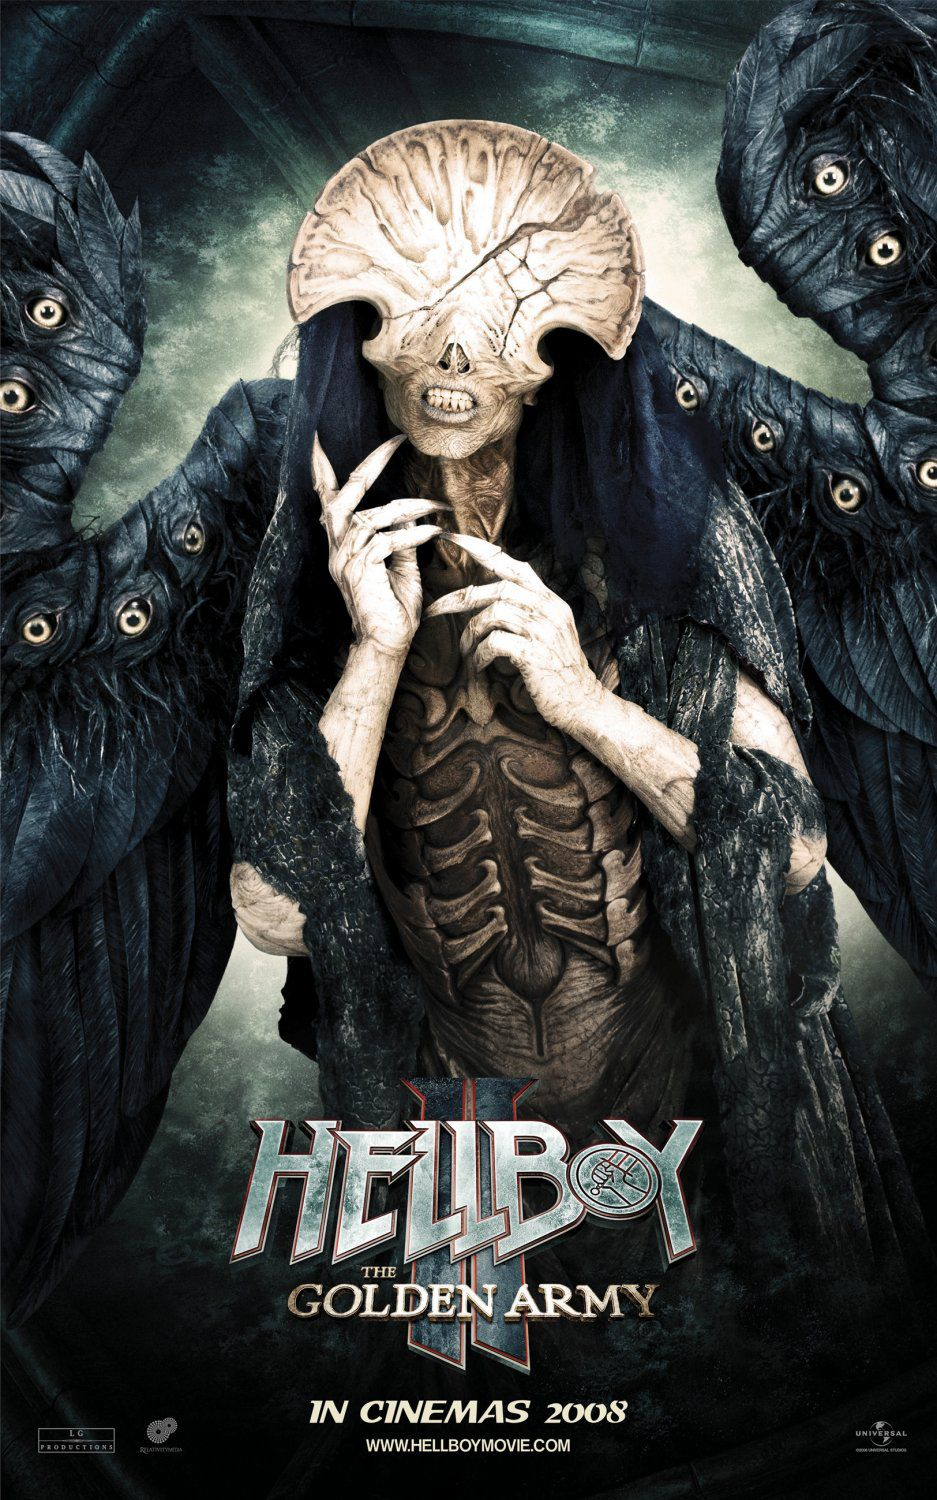 Hellboy 2 - Golden Army - live action film - poster - monster eyes